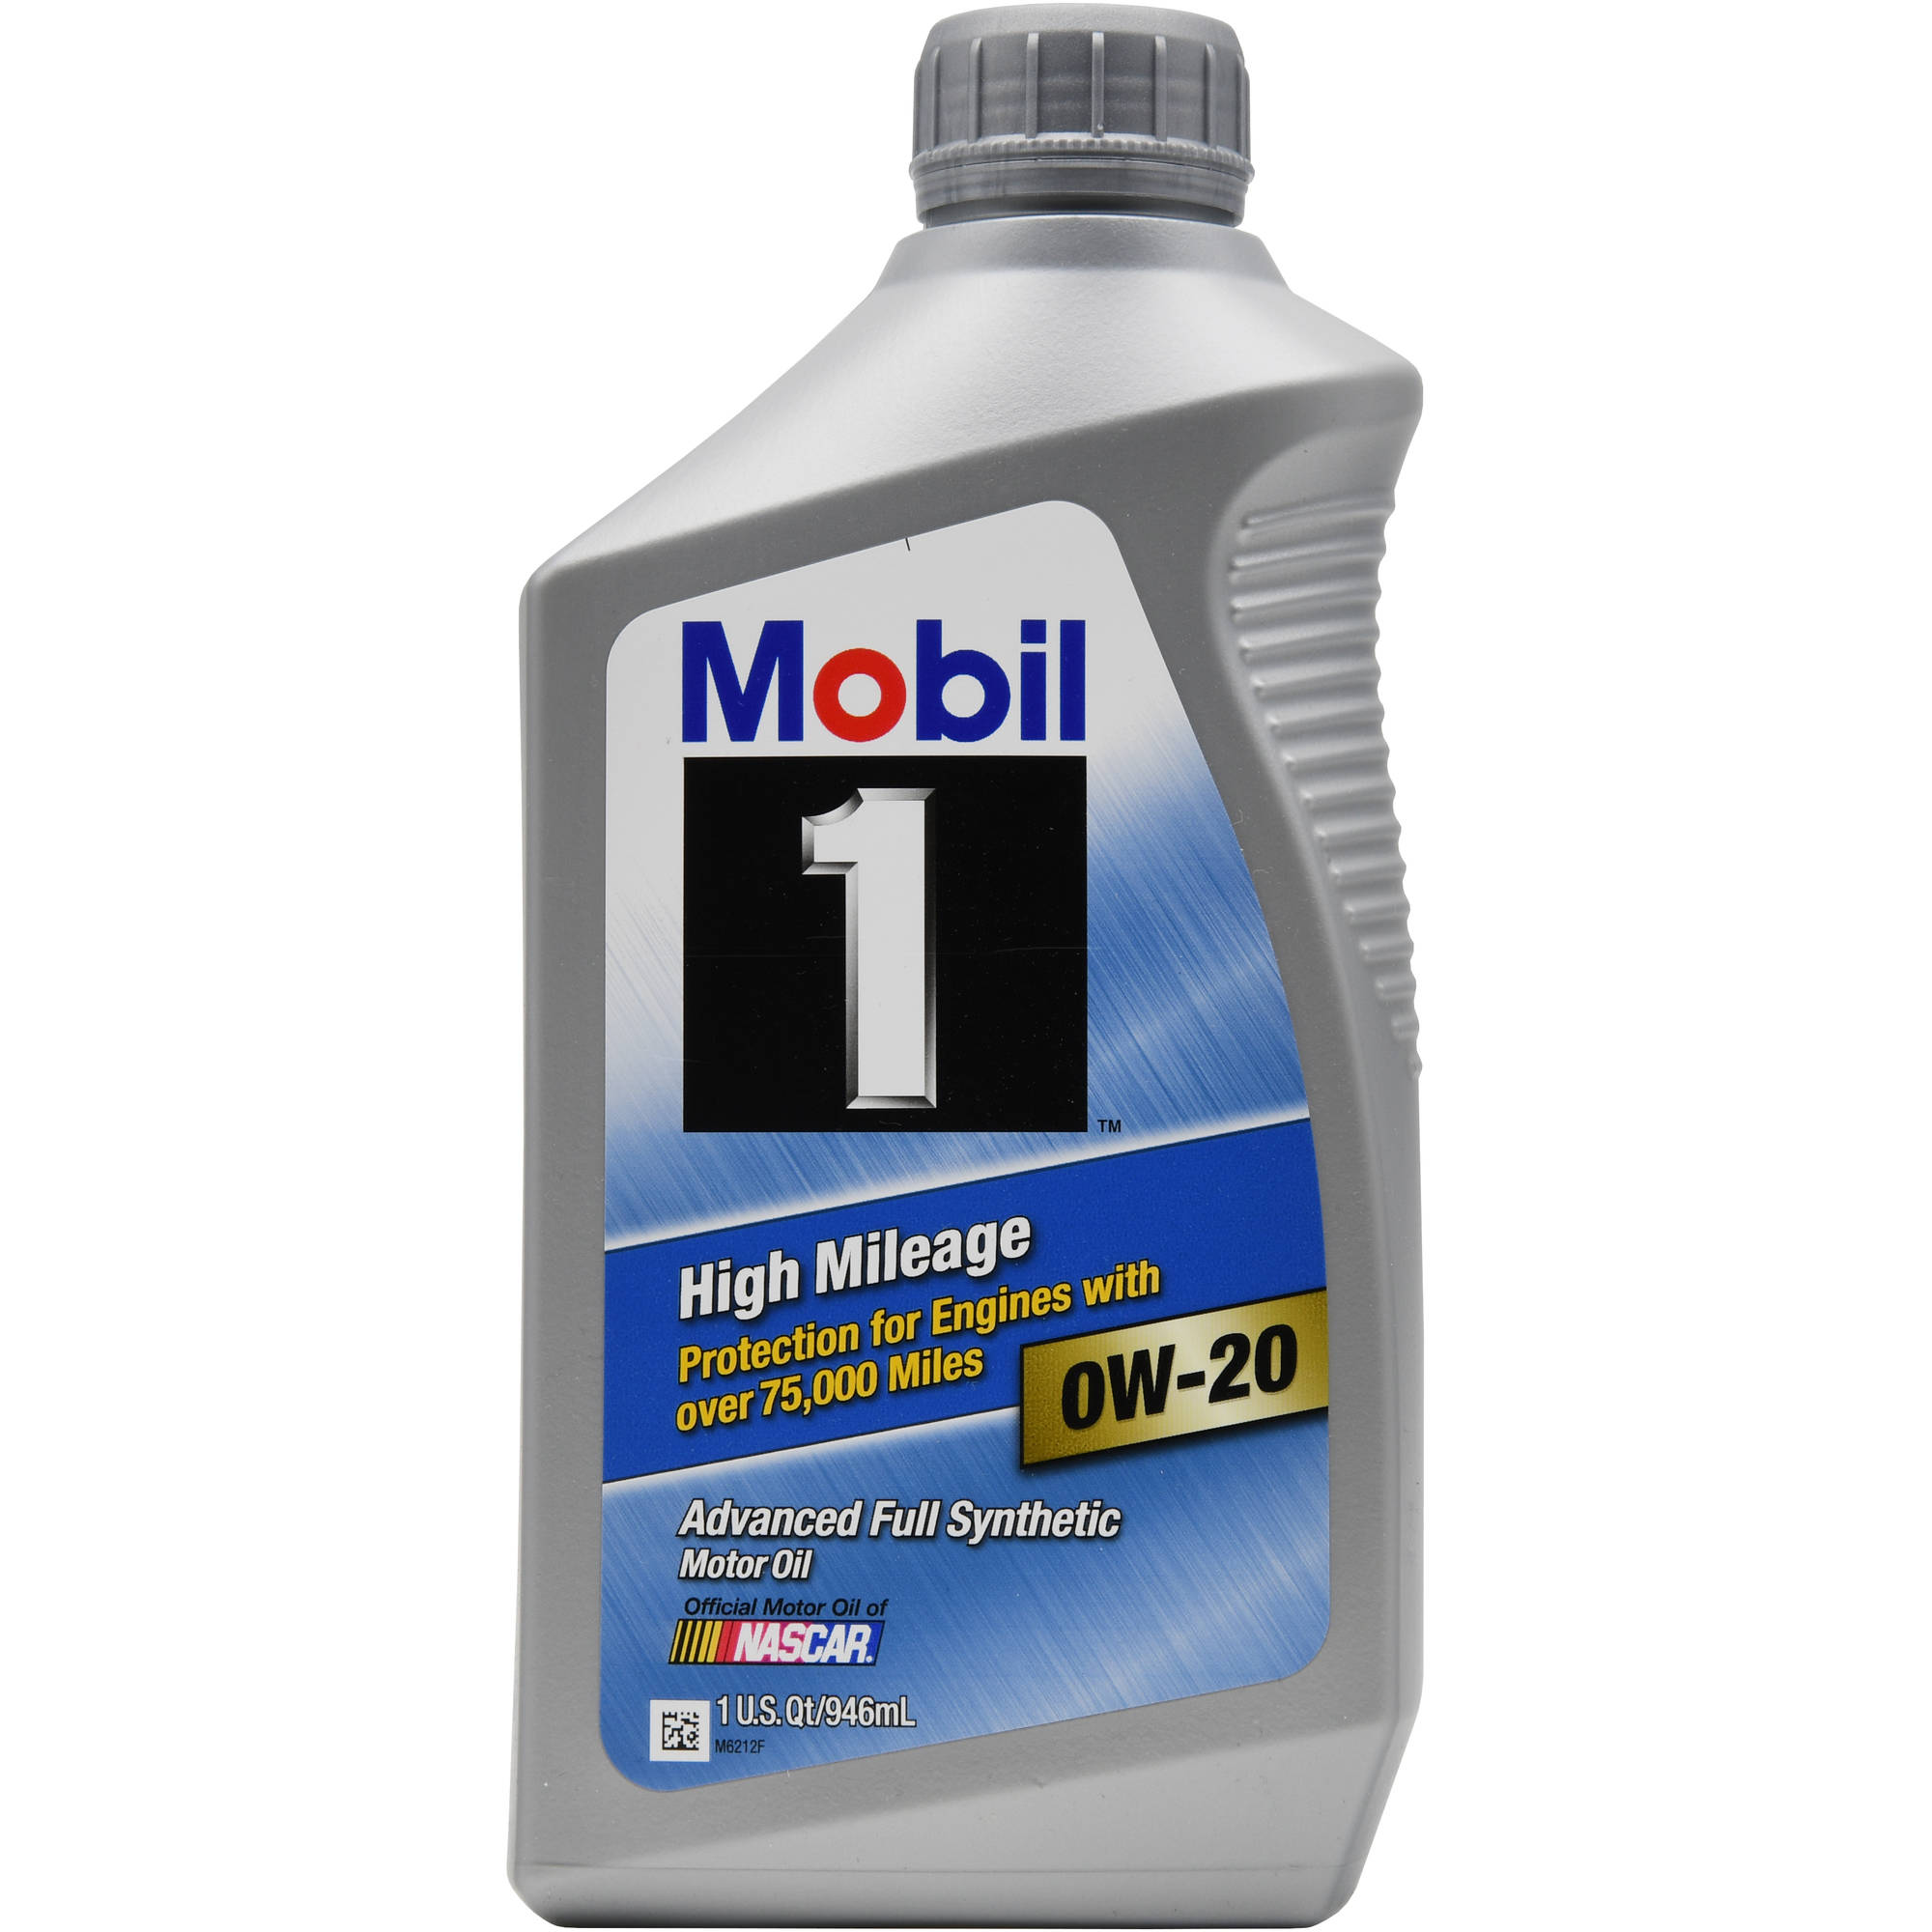 Mobil 1 High Mileage Synthetic Motor Oil, 0W-20, 1 quart, 946 ml